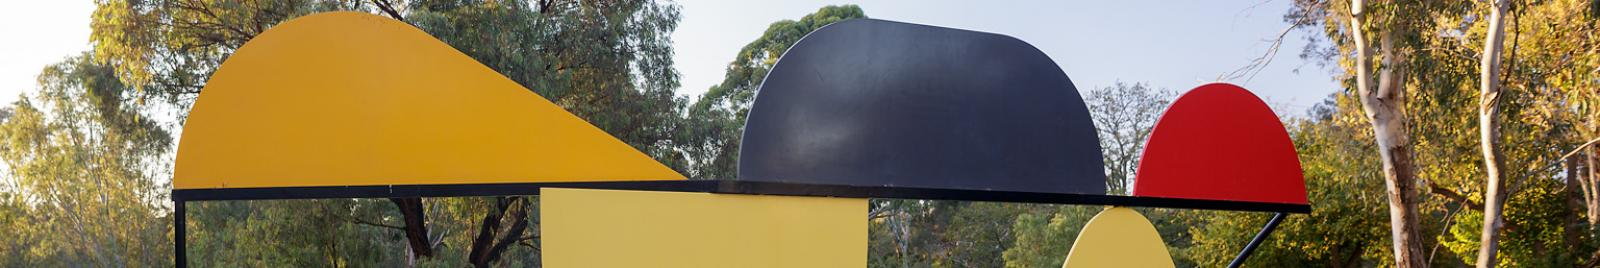 Peter D Cole, Red Hill, Black Hill, Green Hill 2006, steel, stainless steel, synthetic polymer paint, 150 x 270 x 600 cm, Heide Museum of Modern Art, Commissioned through the Heide Foundation 2006 in memory of Ken Fletcher, Chairman of Heide Museum of Modern Art, 1998-2002